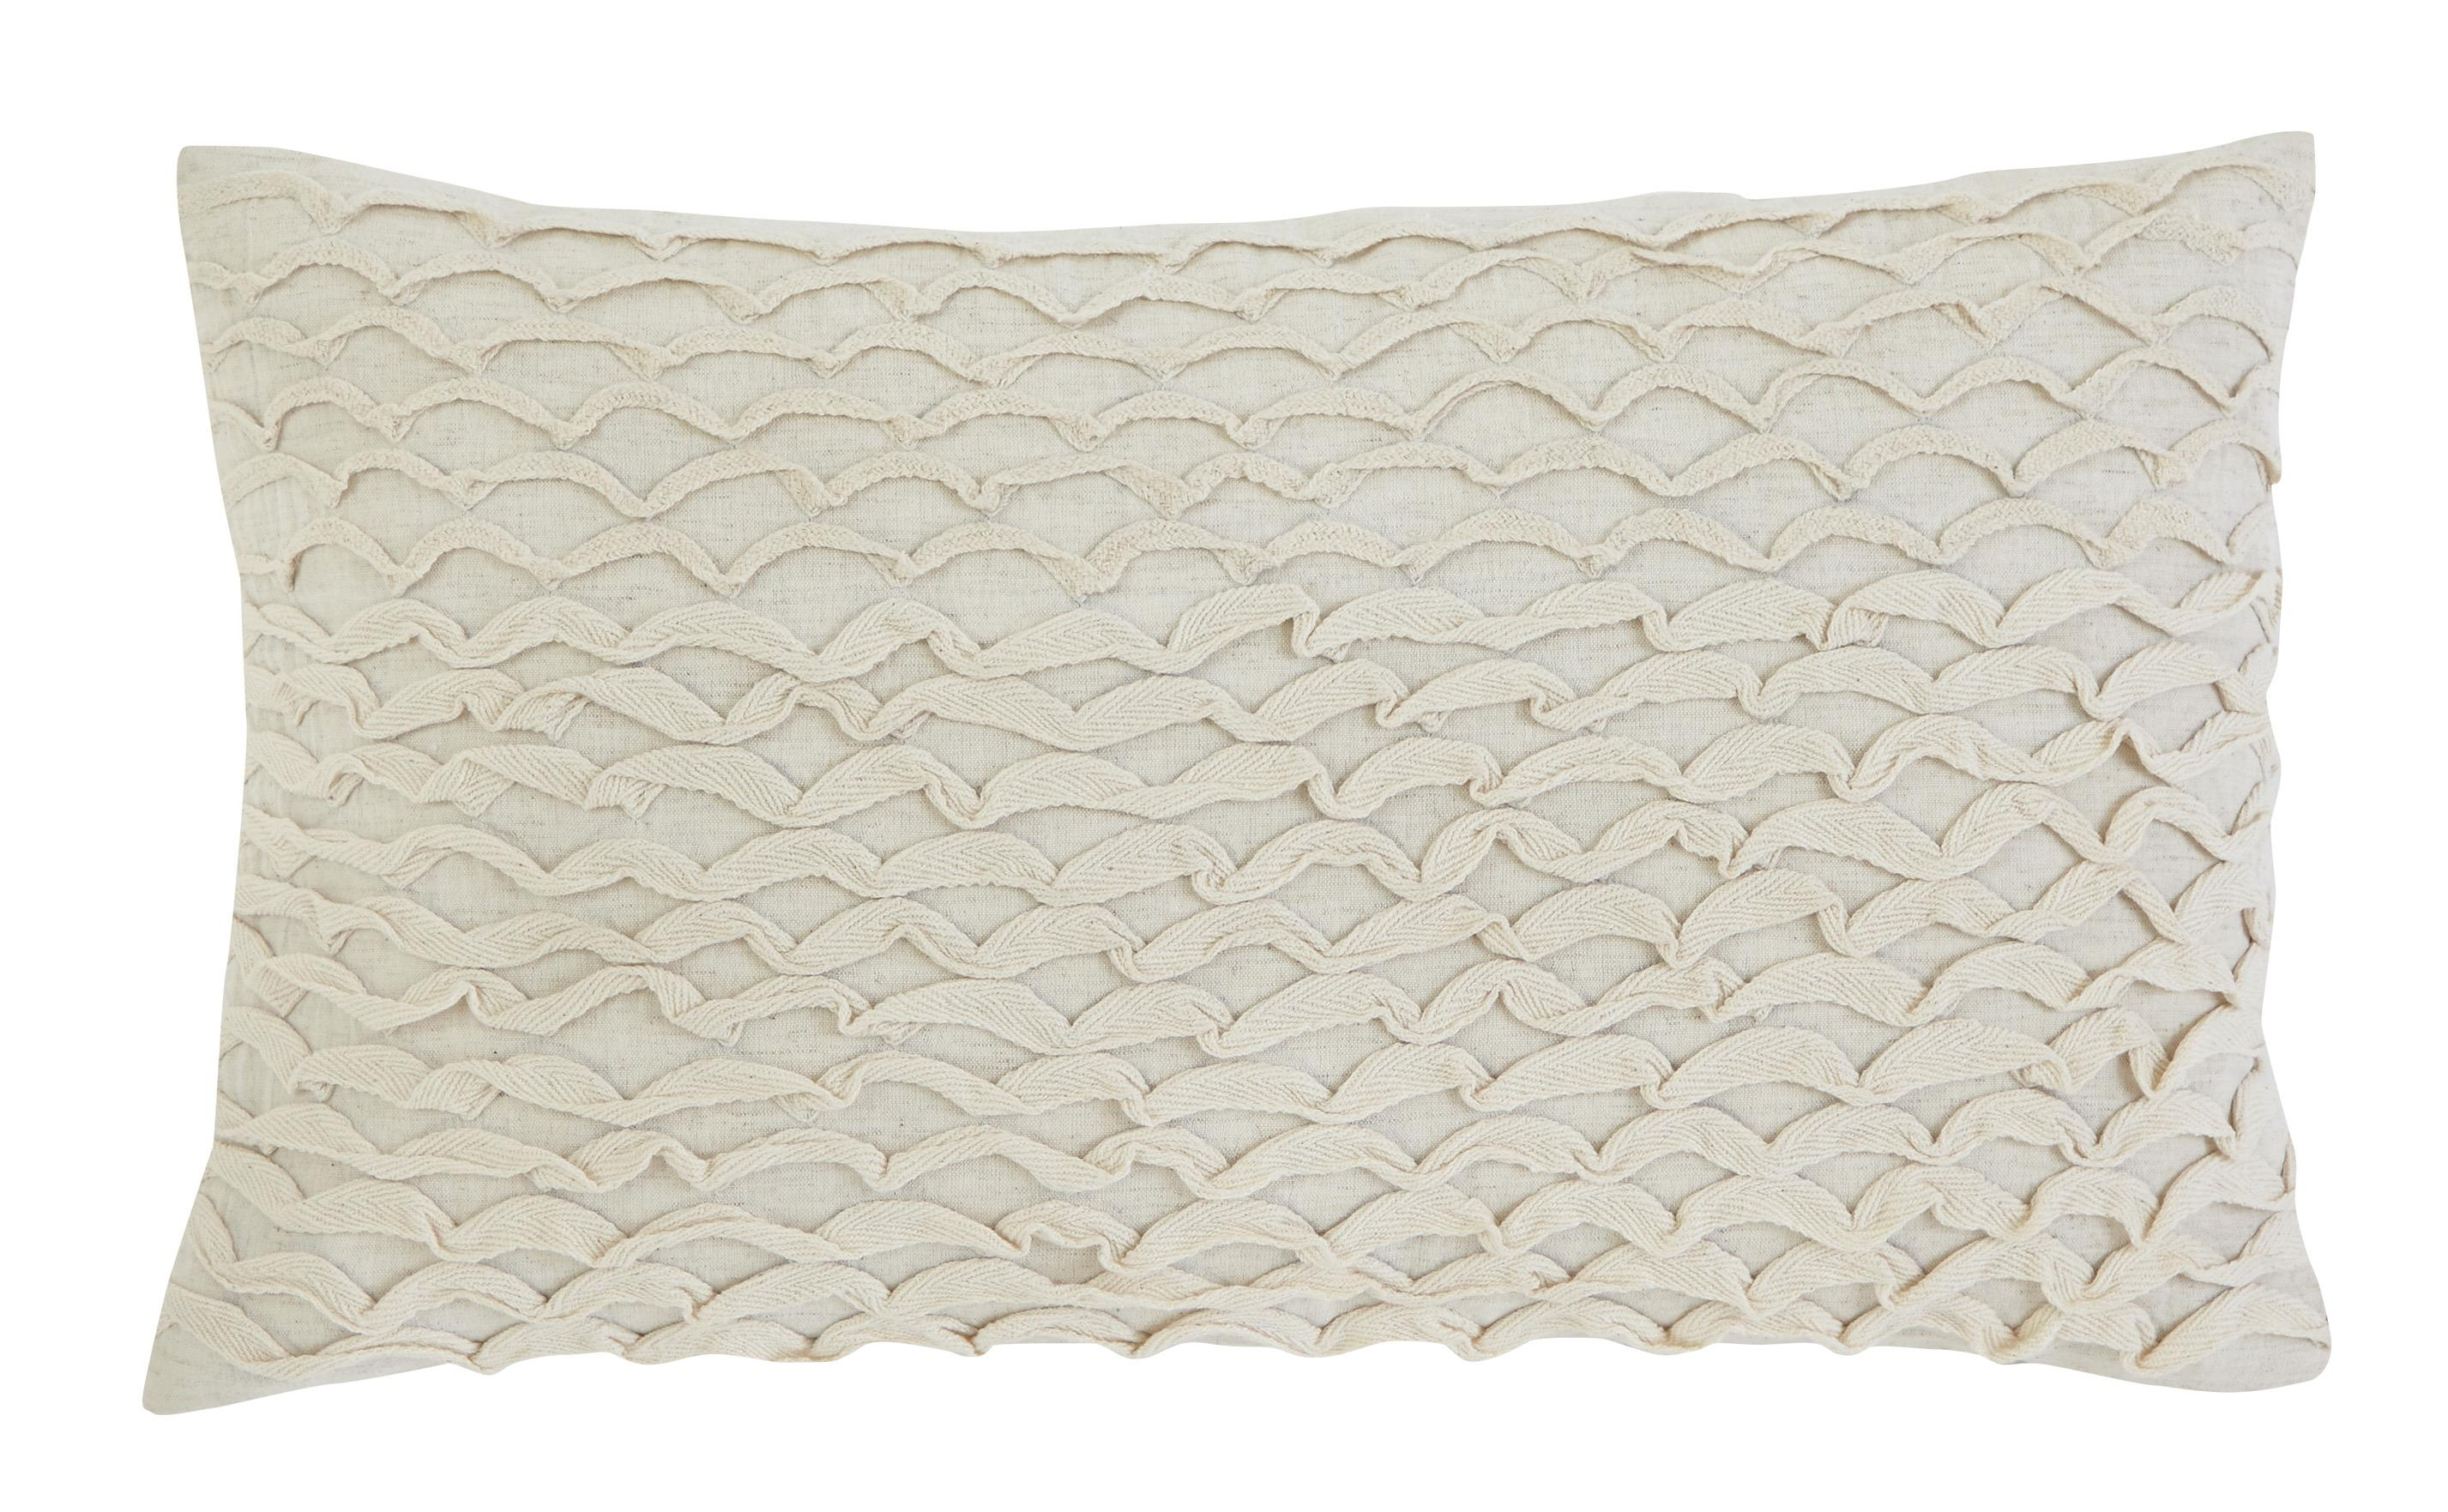 Signature Design by Ashley Pillows Stitched - Beige Lumbar Pillow - Item Number: A1000265P